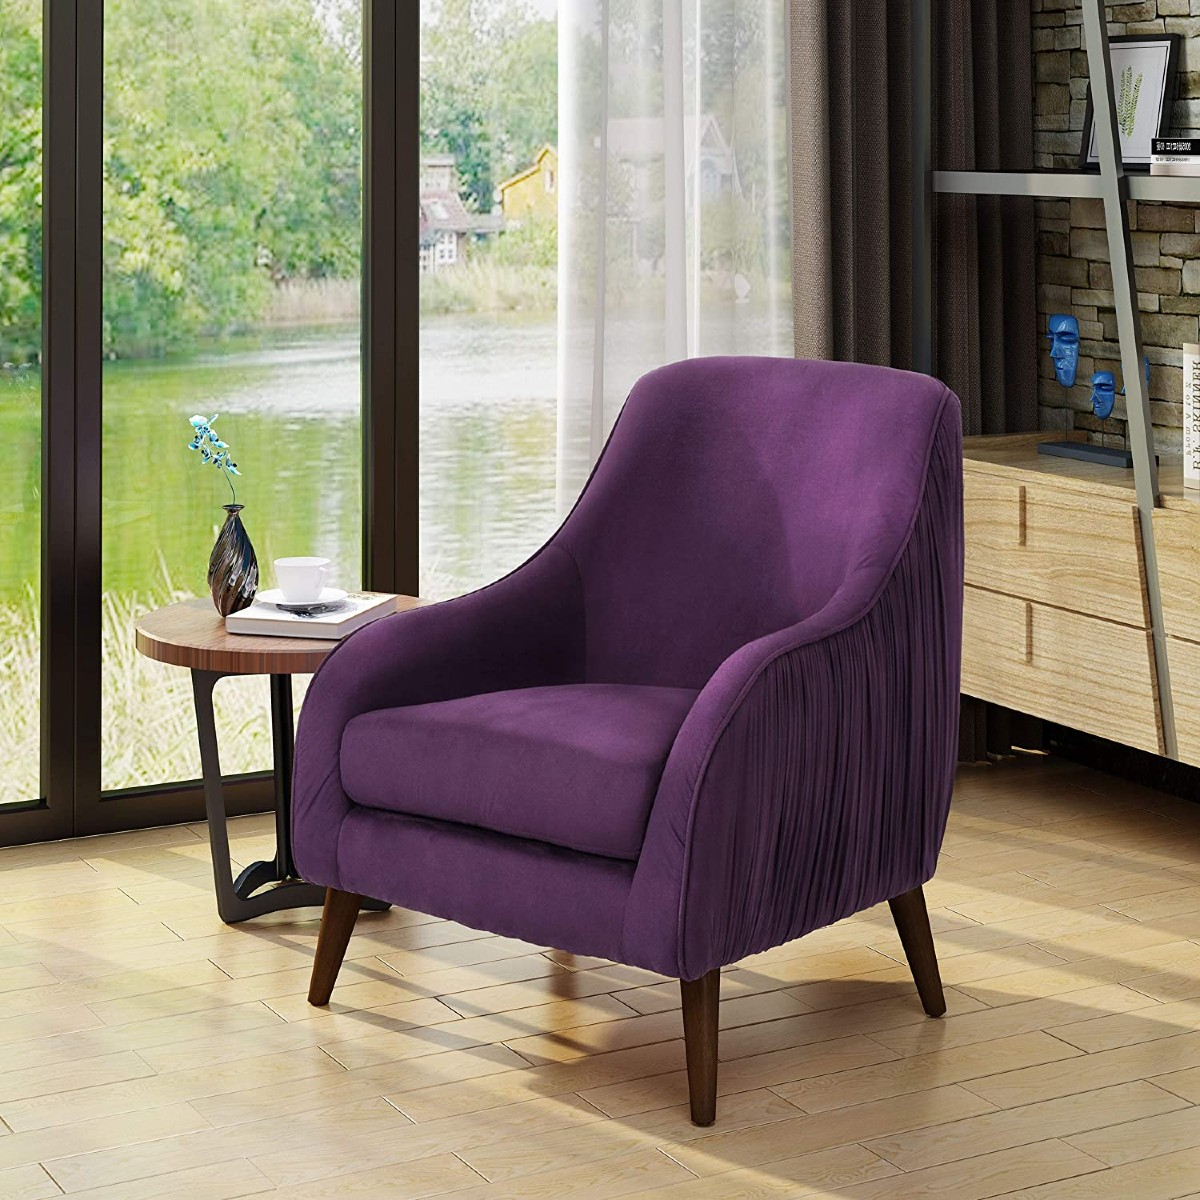 purple velvet chair with wooden furniture